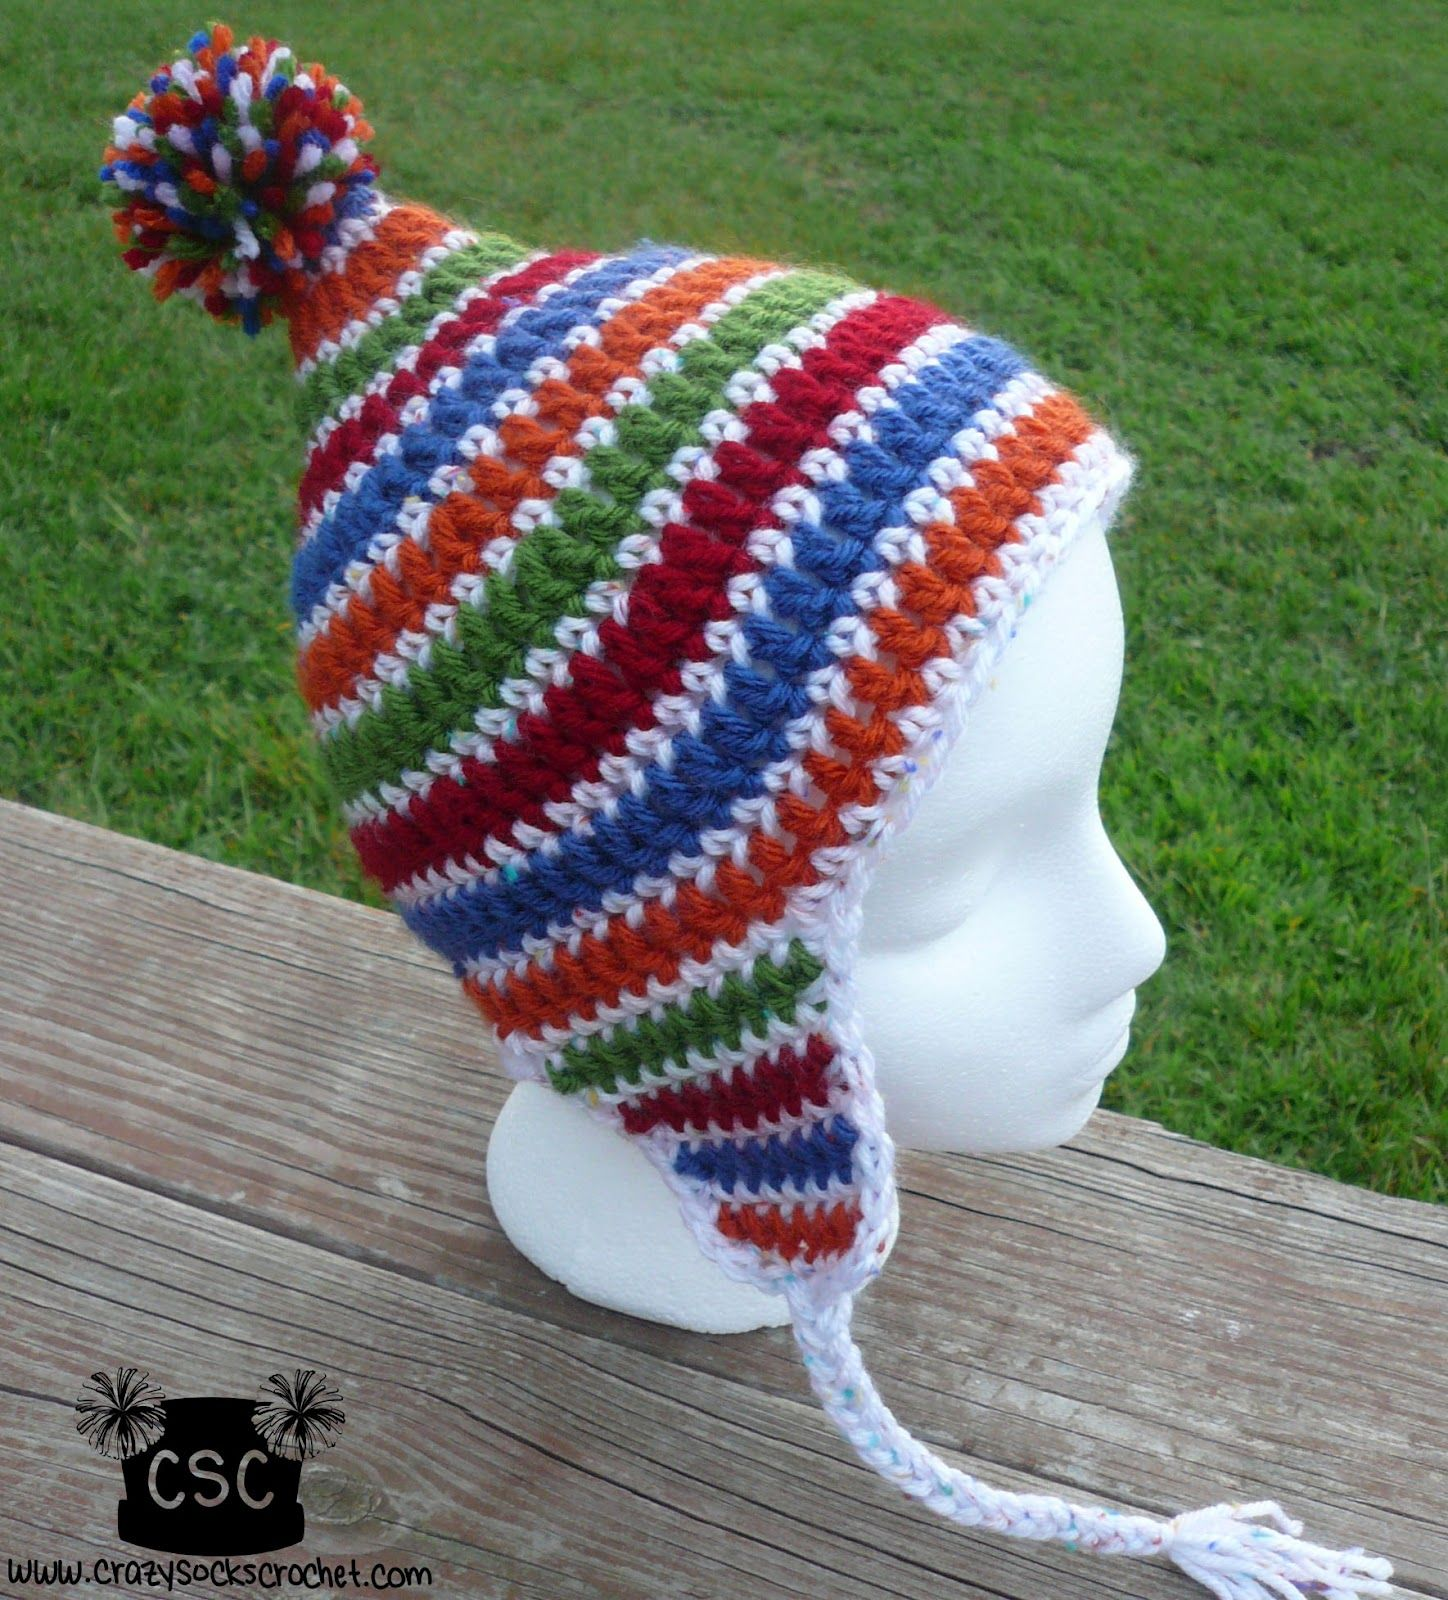 Danyel pink designs crochet pattern circus hat gonnigan hat this circus hat is a fun pointed earflap hat for toddlers i recommend making them in several bright colors with contrasting trim bankloansurffo Gallery